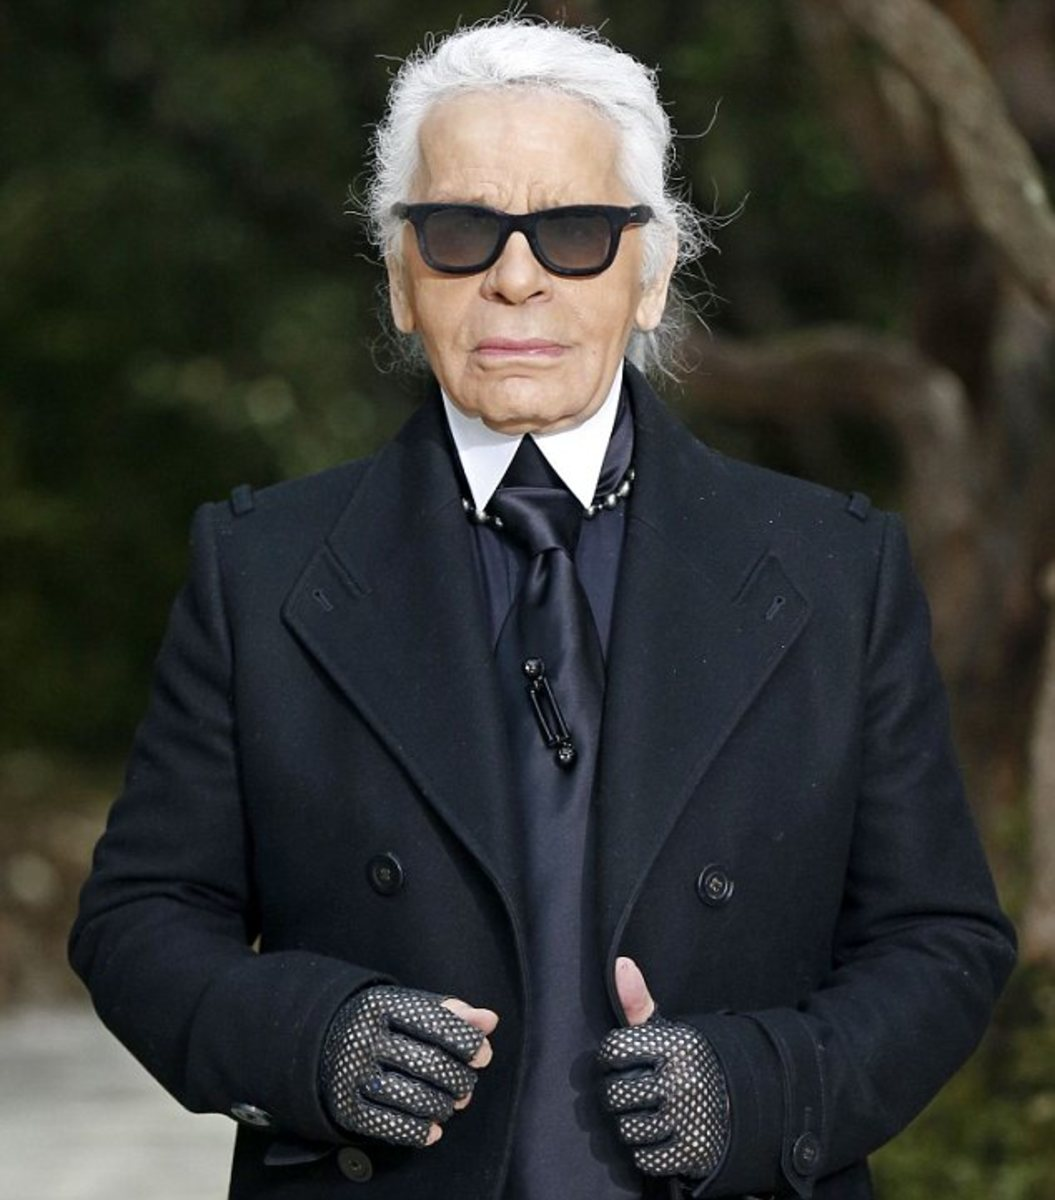 Karl Lagerfeld, the head of the House of Chanel today and its present designer.